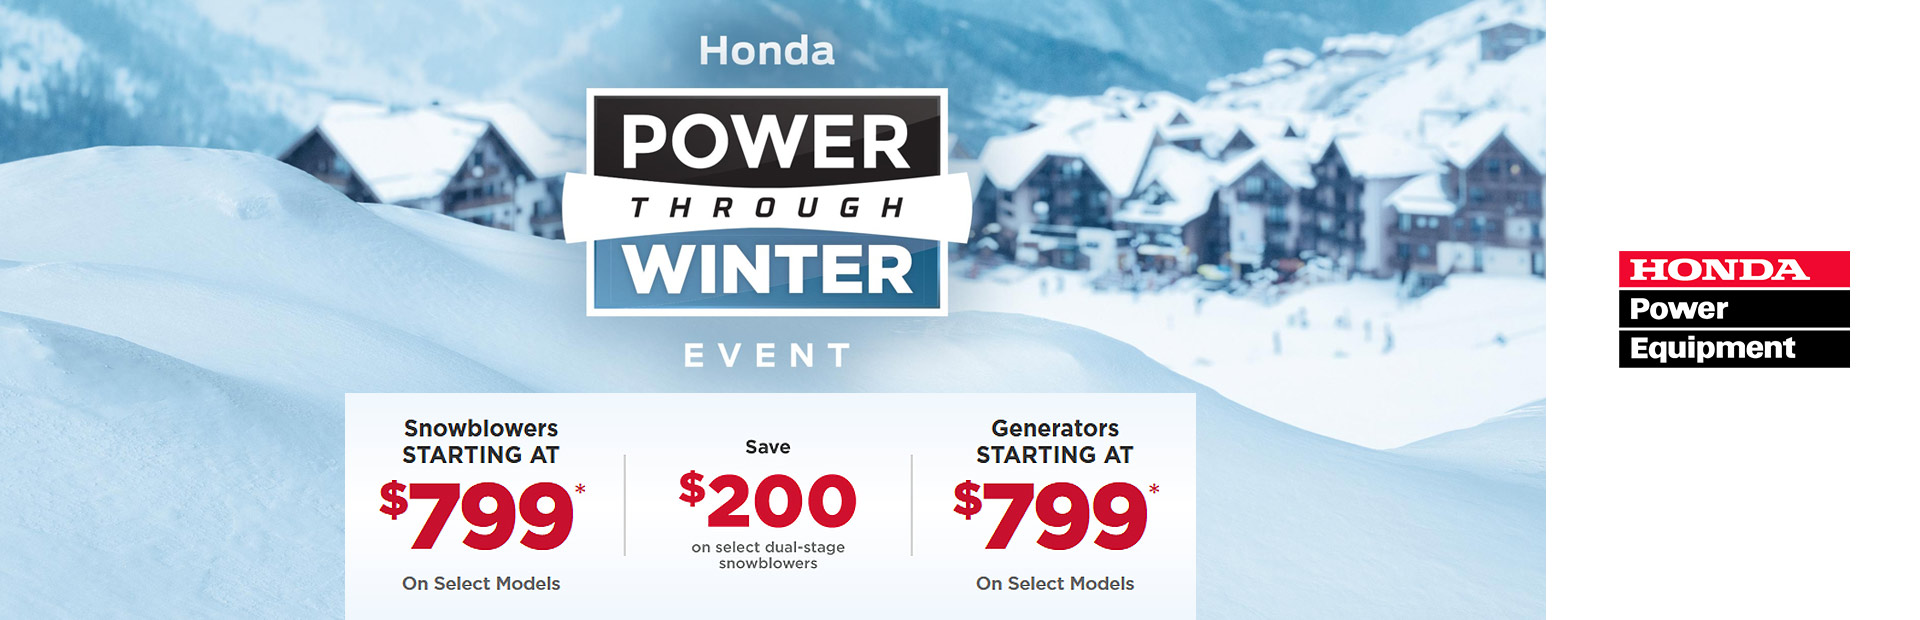 Honda Power Through Winter Event